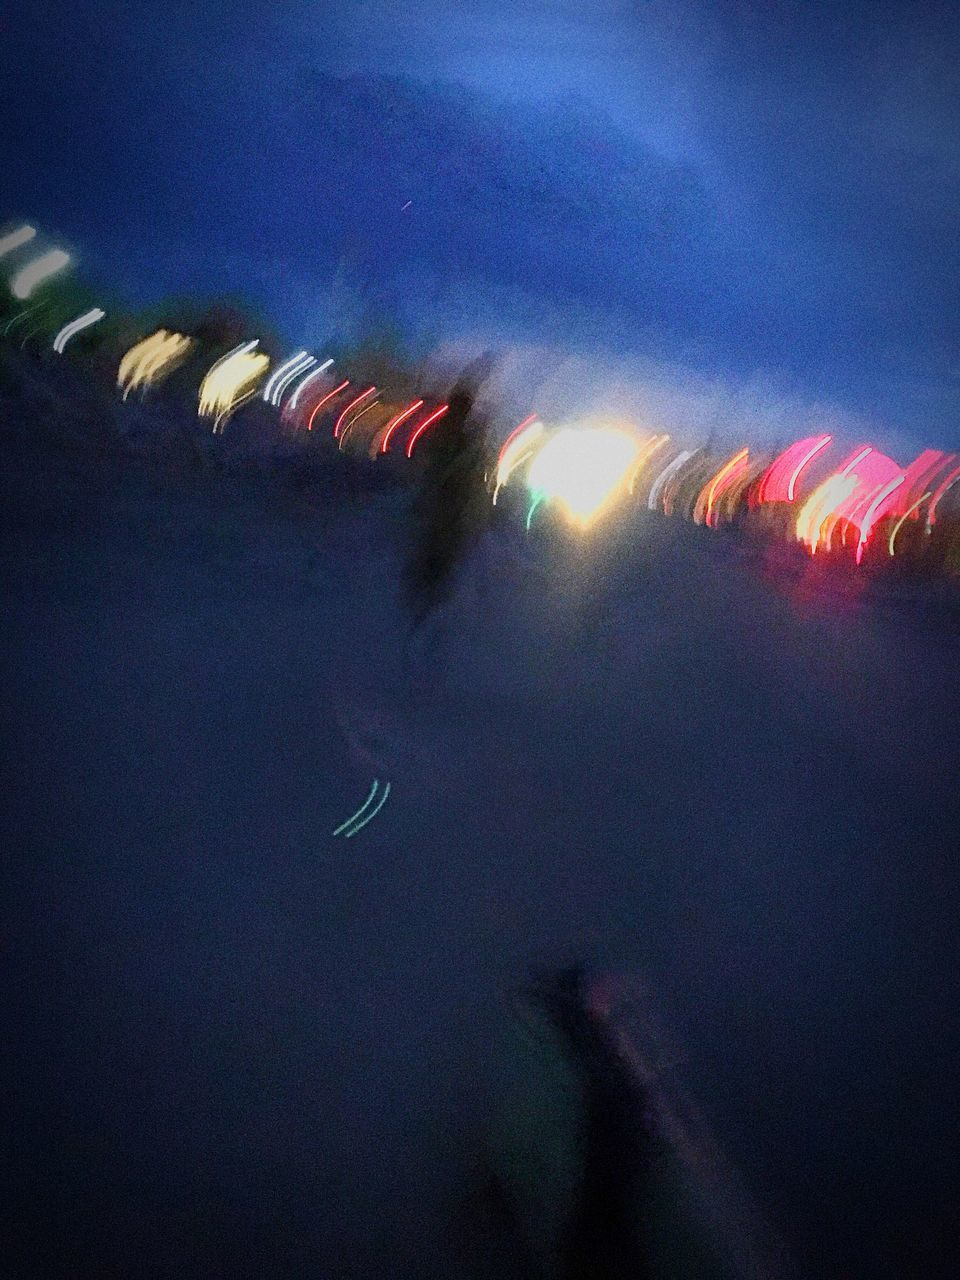 arts culture and entertainment, night, blurred motion, illuminated, long exposure, event, multi colored, low angle view, sky, outdoors, motion, no people, nature